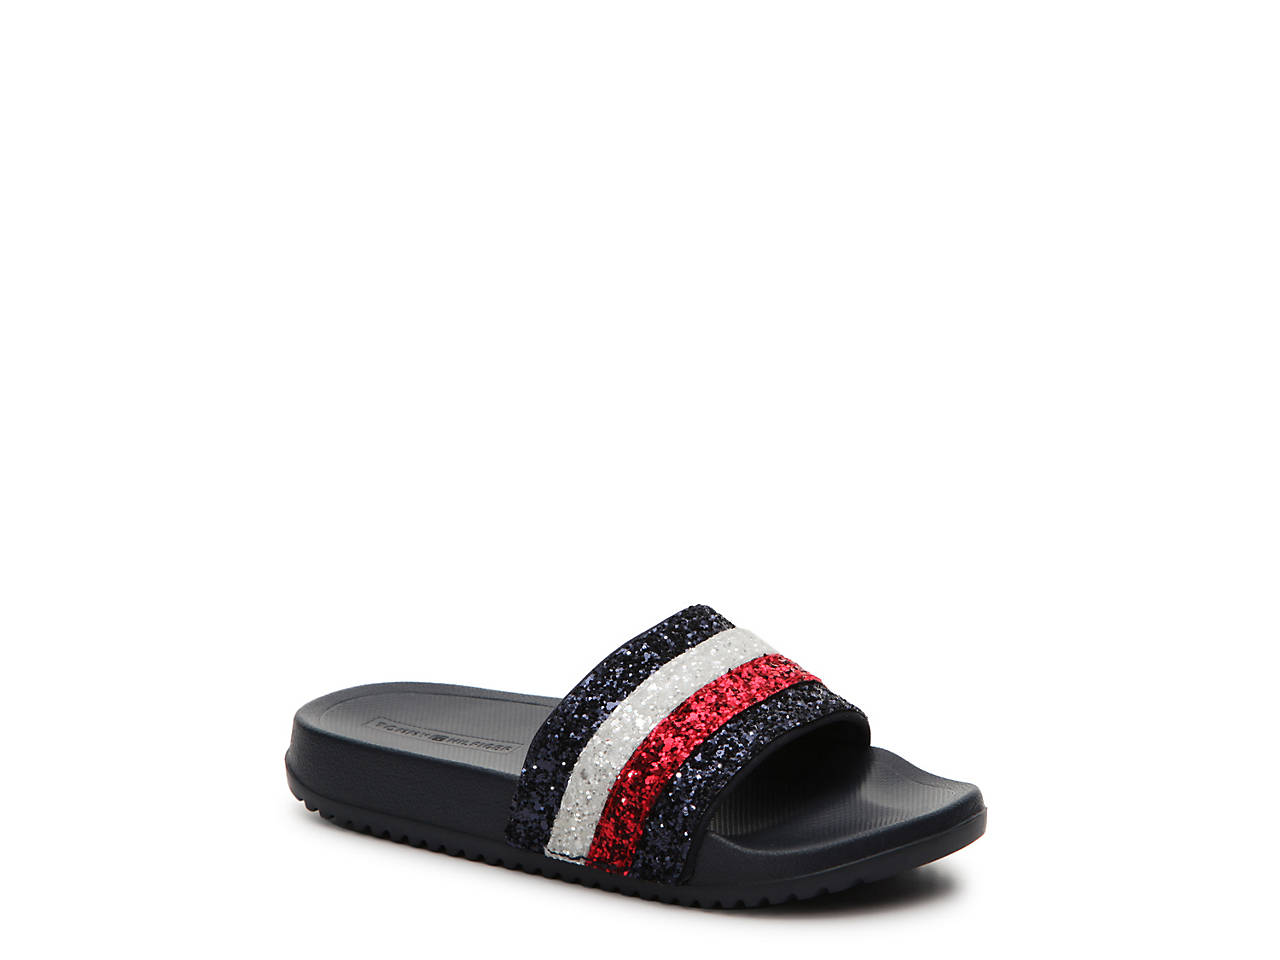 afacd7ac30ba Tommy Hilfiger Remy Toddler   Youth Slide Sandal Kids Shoes